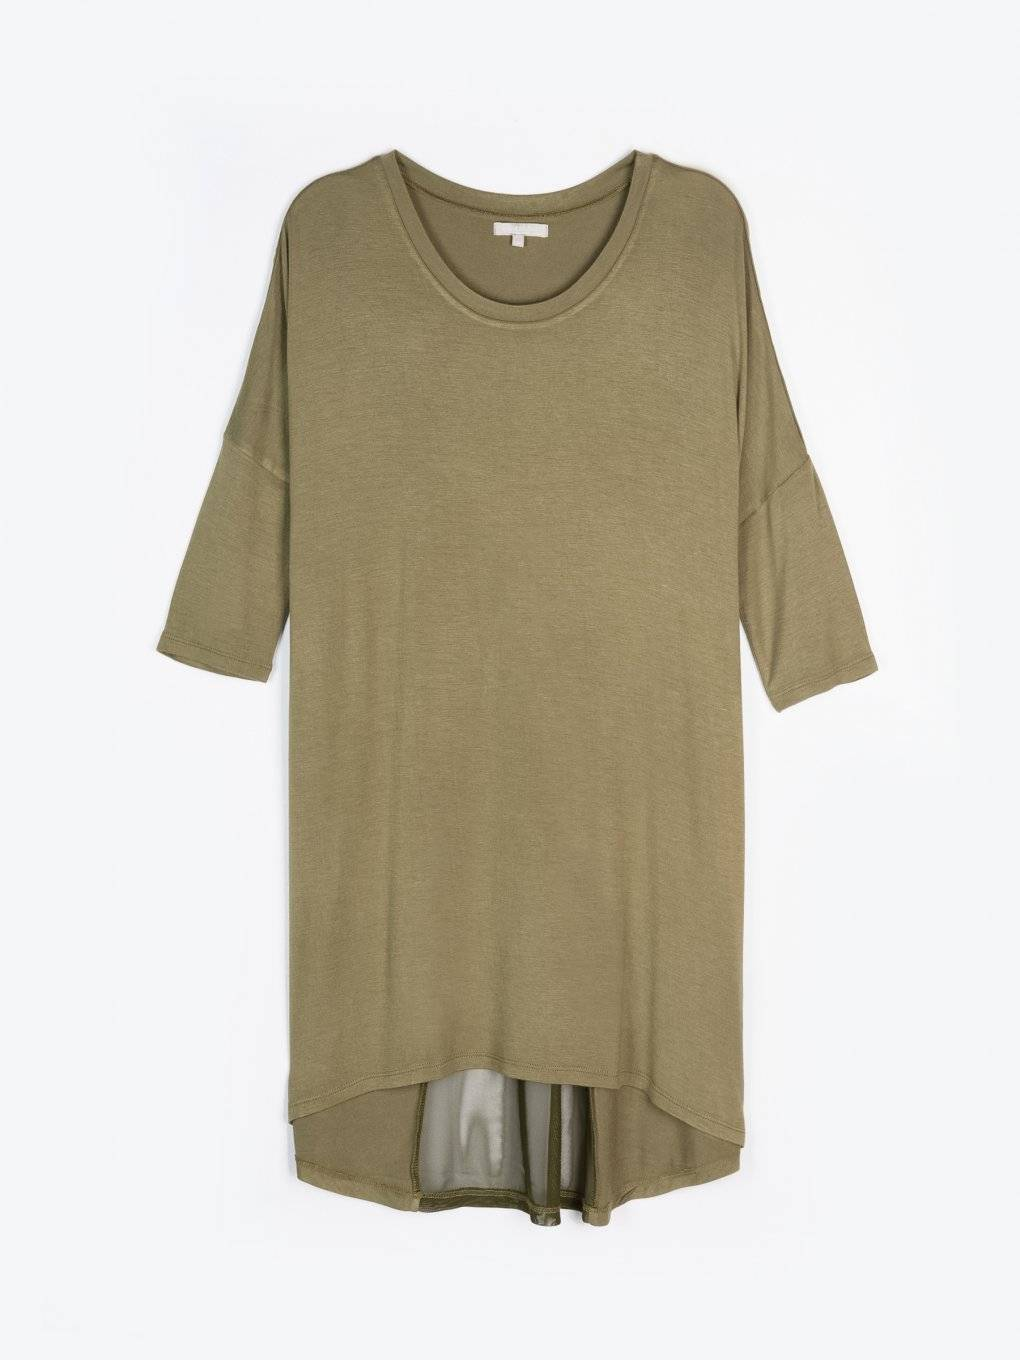 Combined oversized top